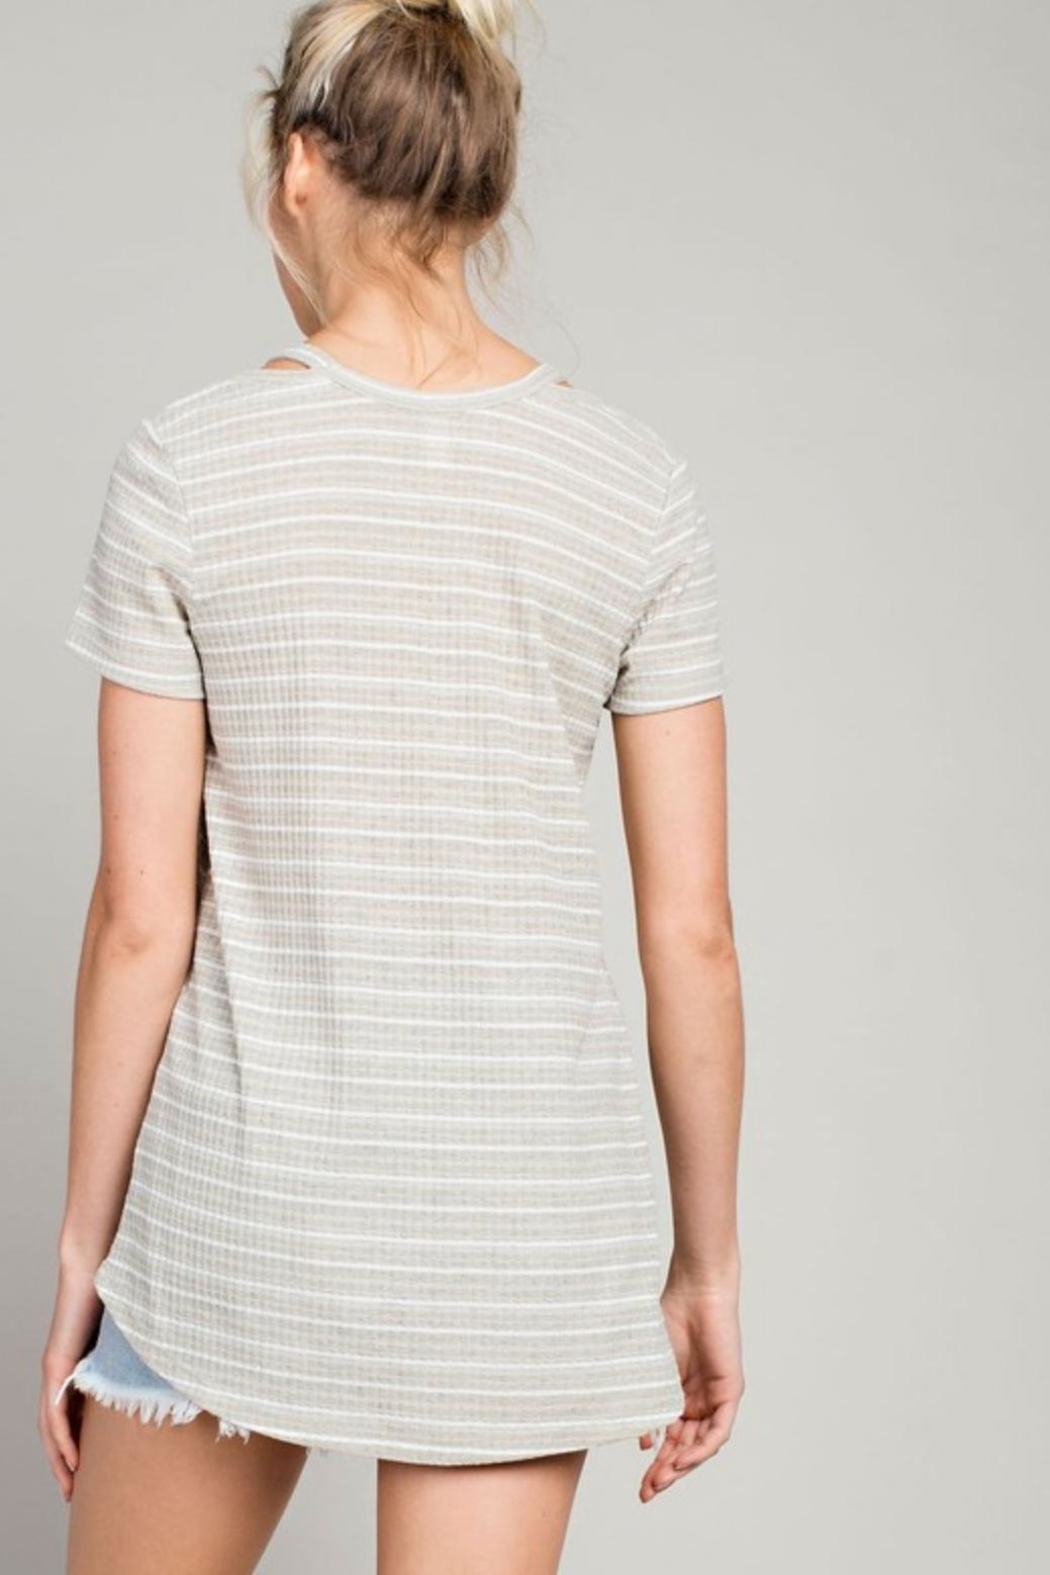 LLove USA Cut Out Tee-Shirt - Front Full Image